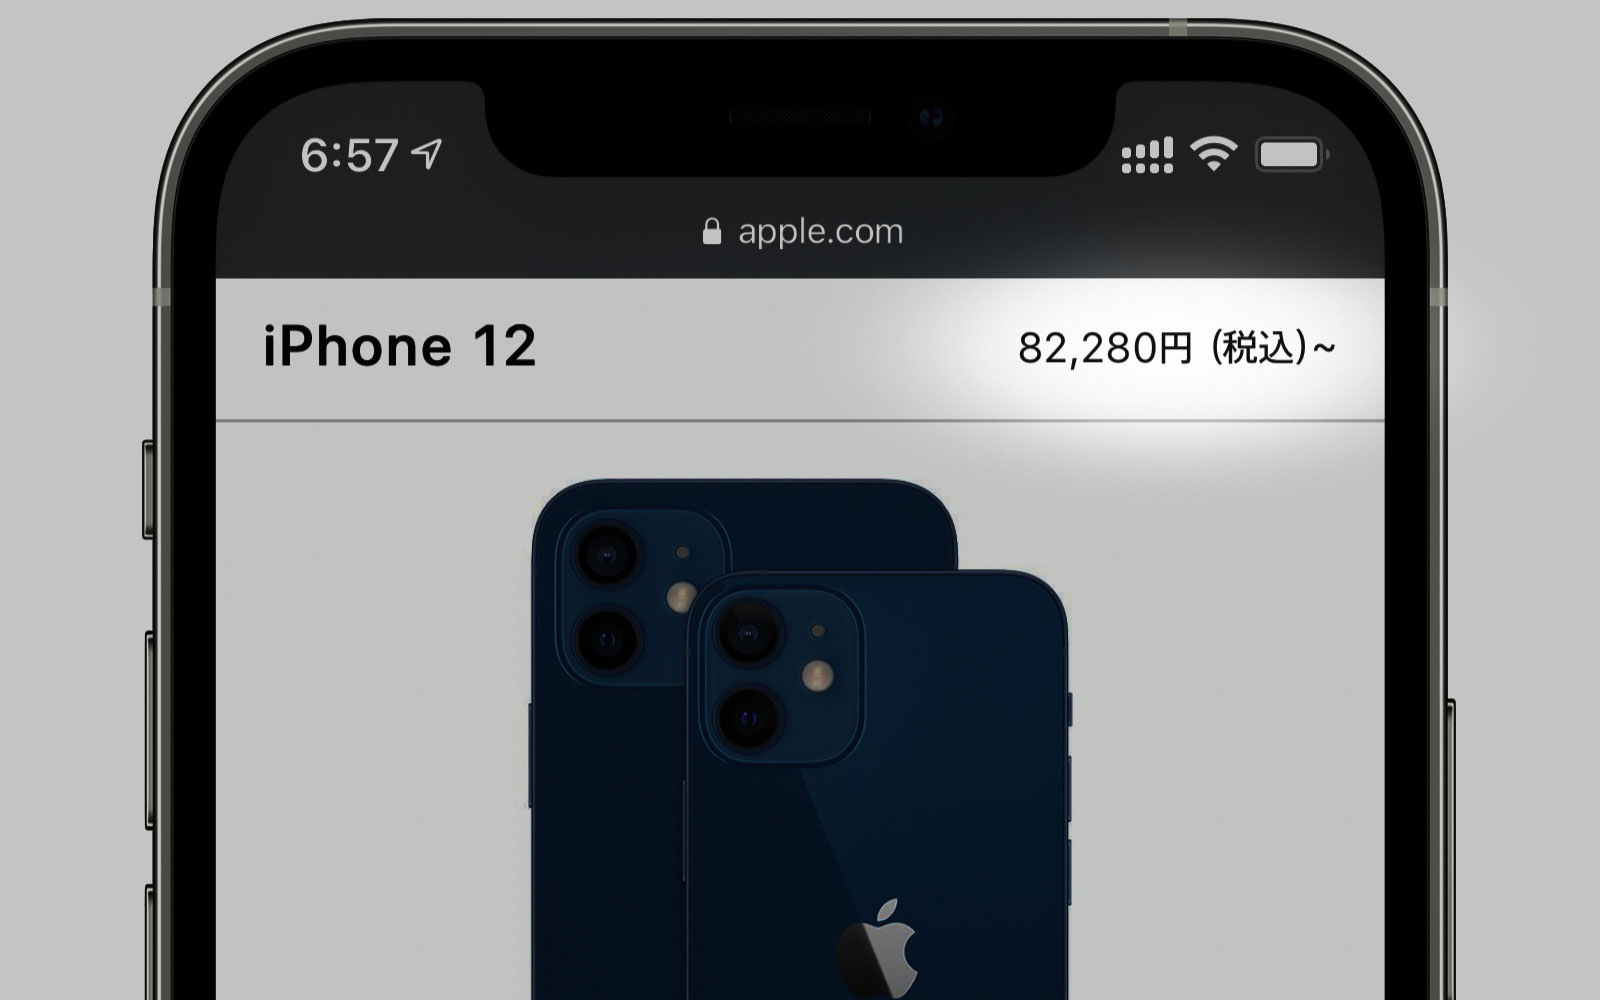 Iphone12 tax included pricing